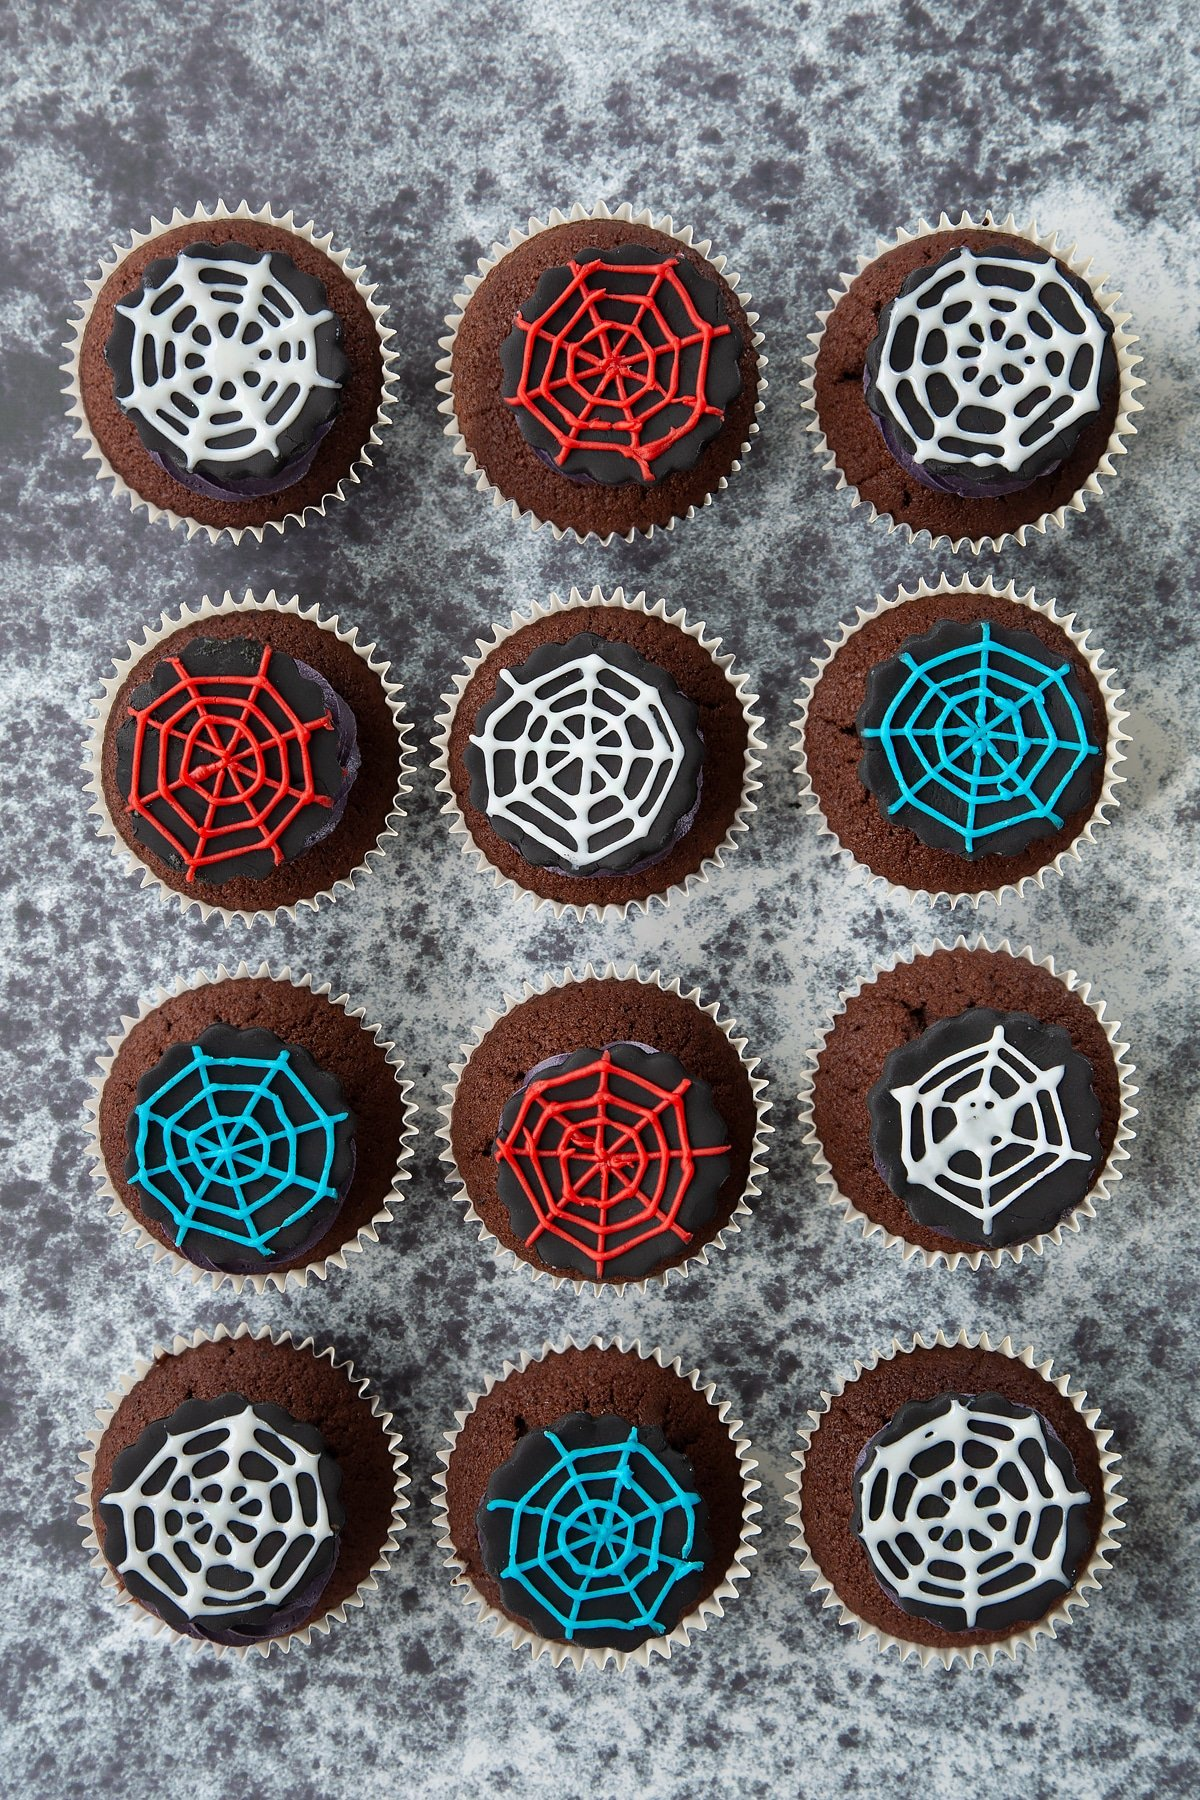 Spider web cupcakes arranged on a black surface, shown from above. The chocolate sponge cupcakes are topped with purple vanilla buttercream and discs of black sugar paste decorated with spider web icing.